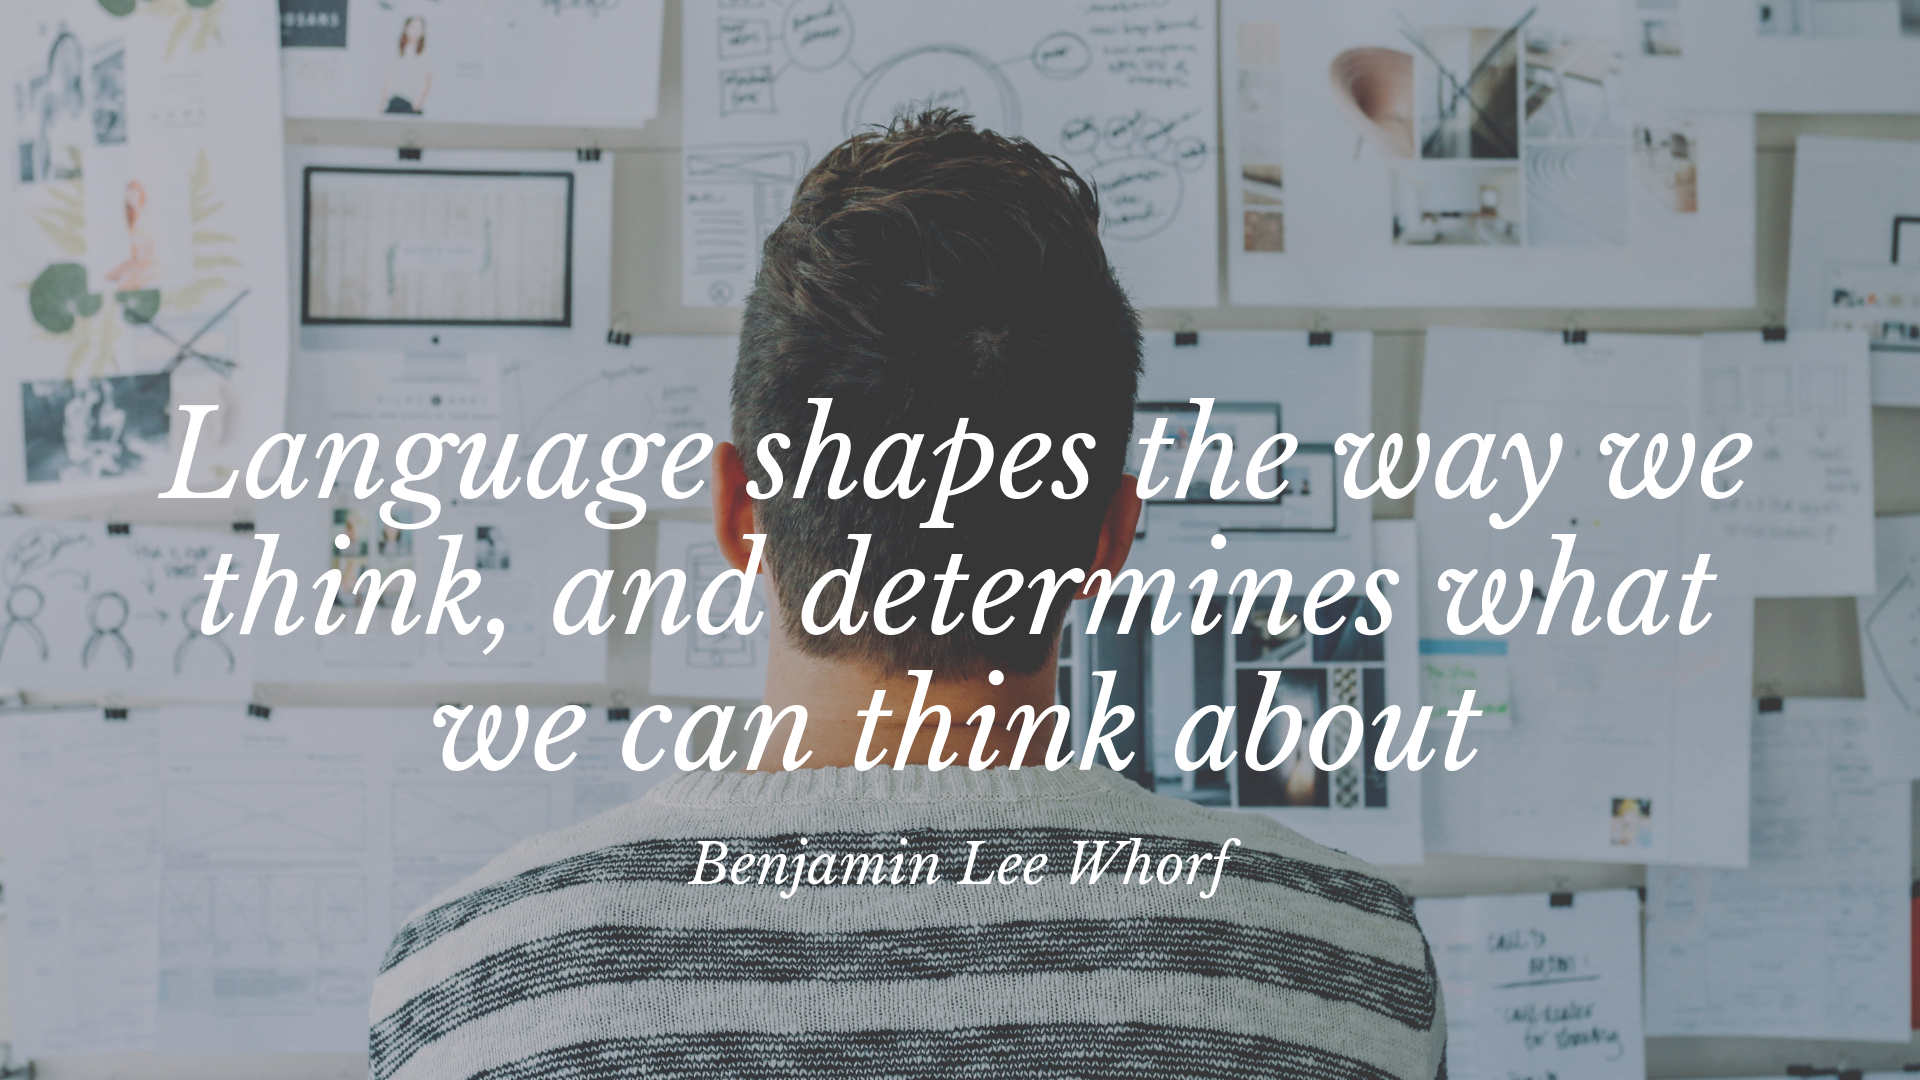 Language shapes the way we think, and determines what we can think about. – Benjamin Lee Whorf